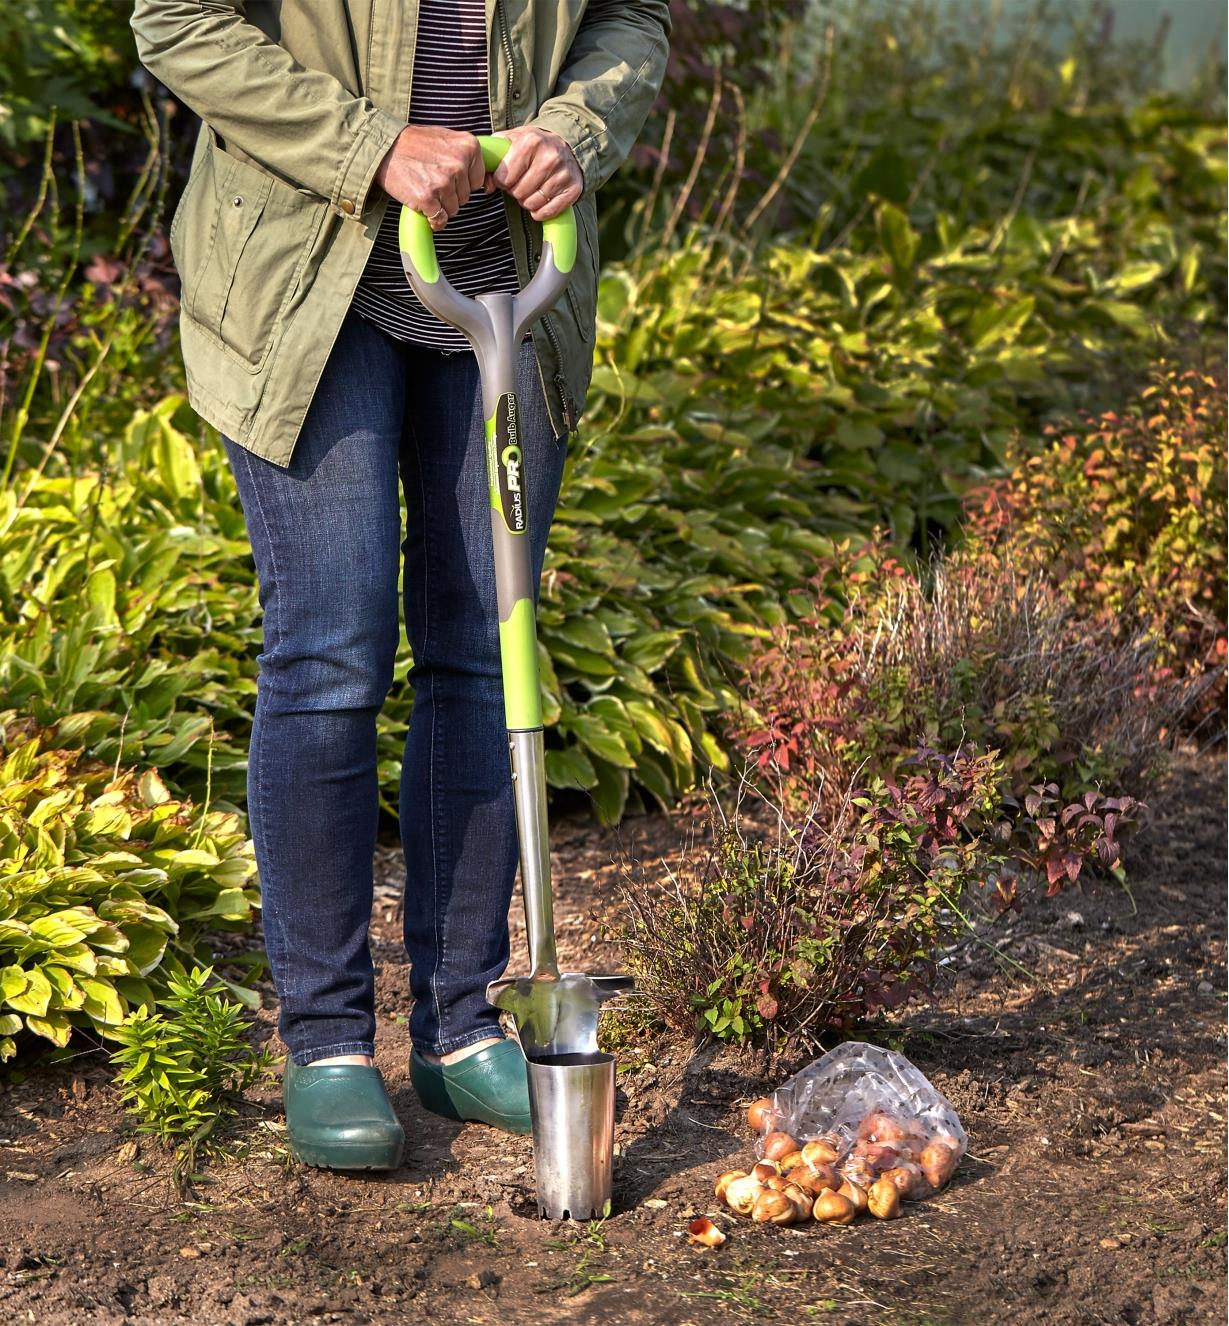 Planting bulbs in a garden with the Radius Ergonomic Stainless-Steel Planter